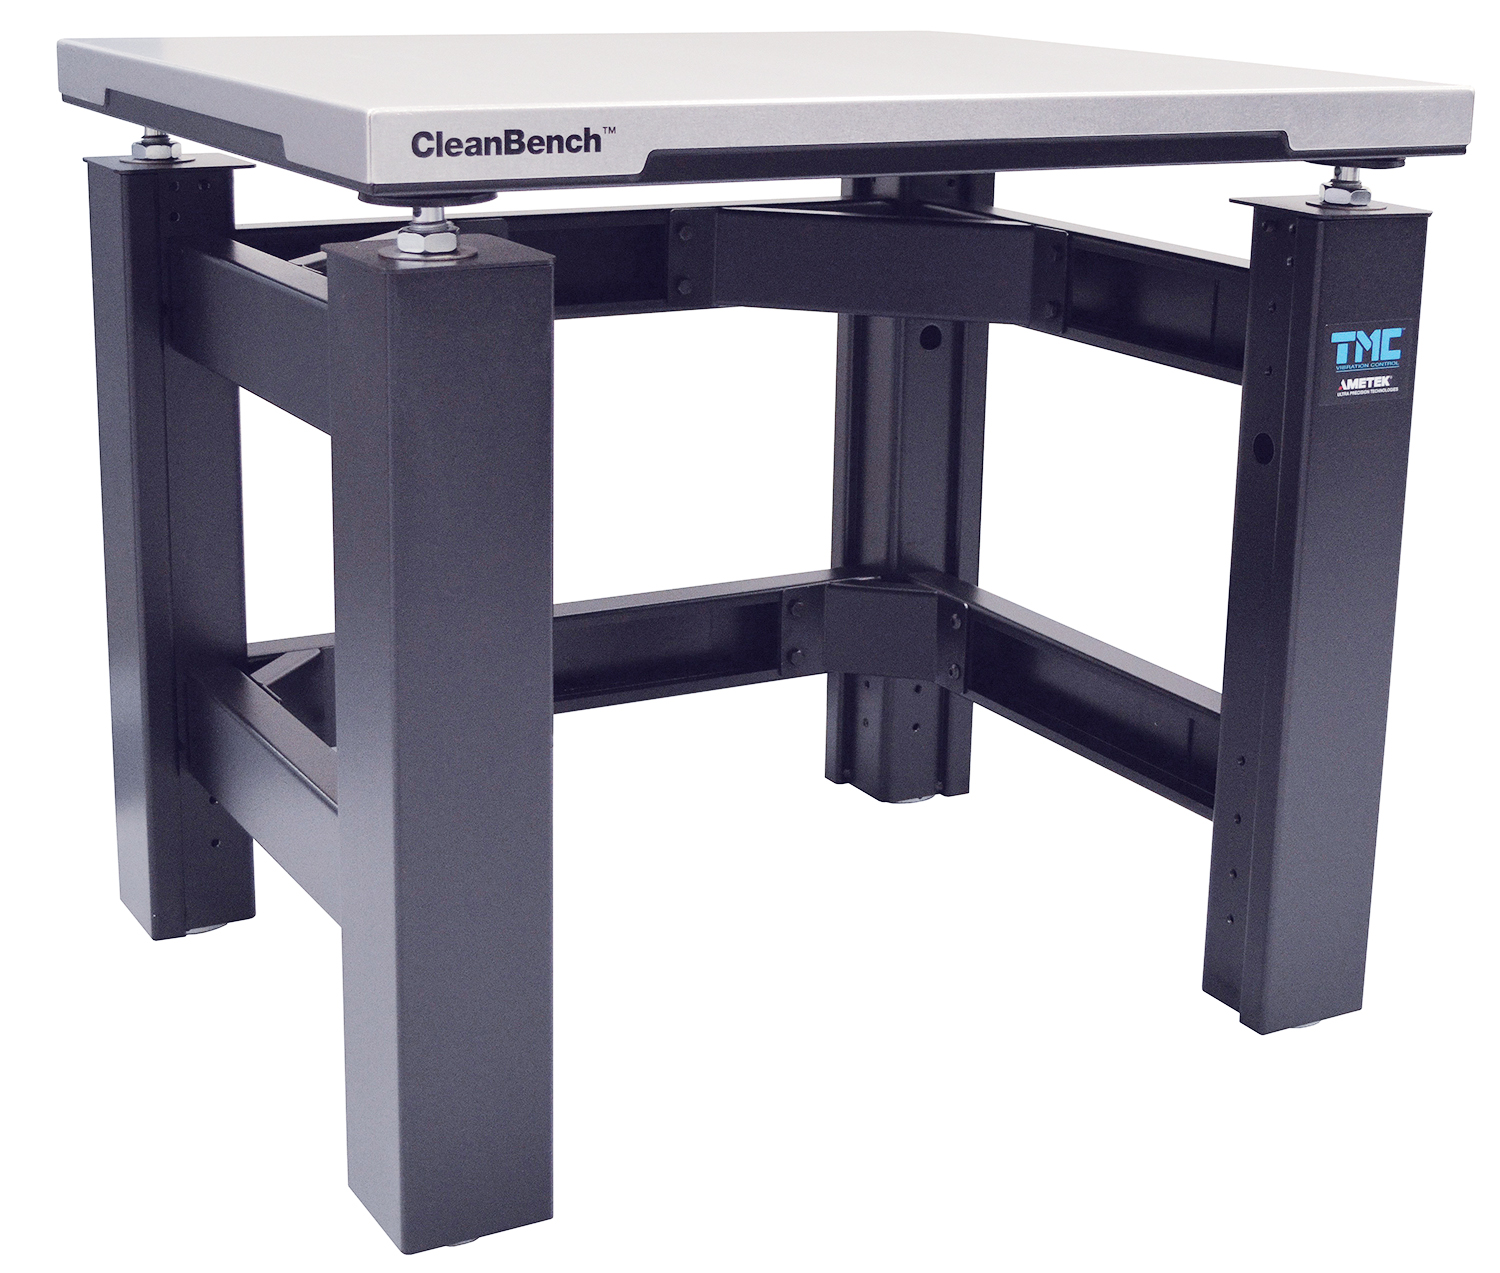 laboratory table Formaspace is the industry leading us manufacturer of custom lab furniture 3- week lead times & dedicated design services contact us to talk to an expert.